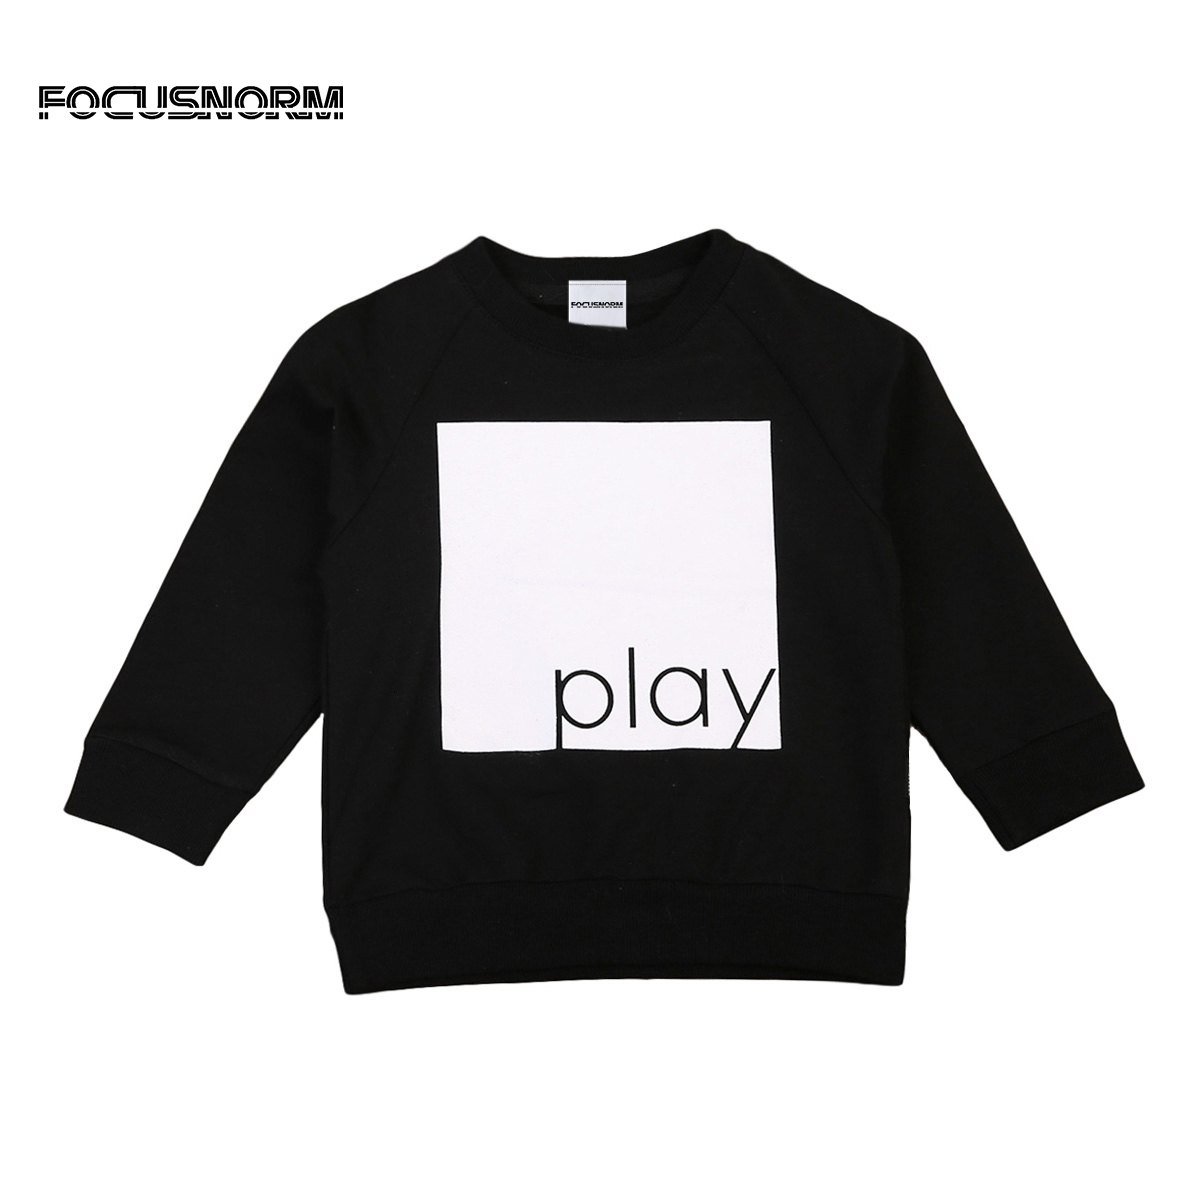 4 Styles Toddler Simple Sweatshirt Hoodies Tops Kids Boy Jumpers Long Sleeve Crew Neck Autumn Winter Warm Pullover new for b104 01 007 touch screen glass